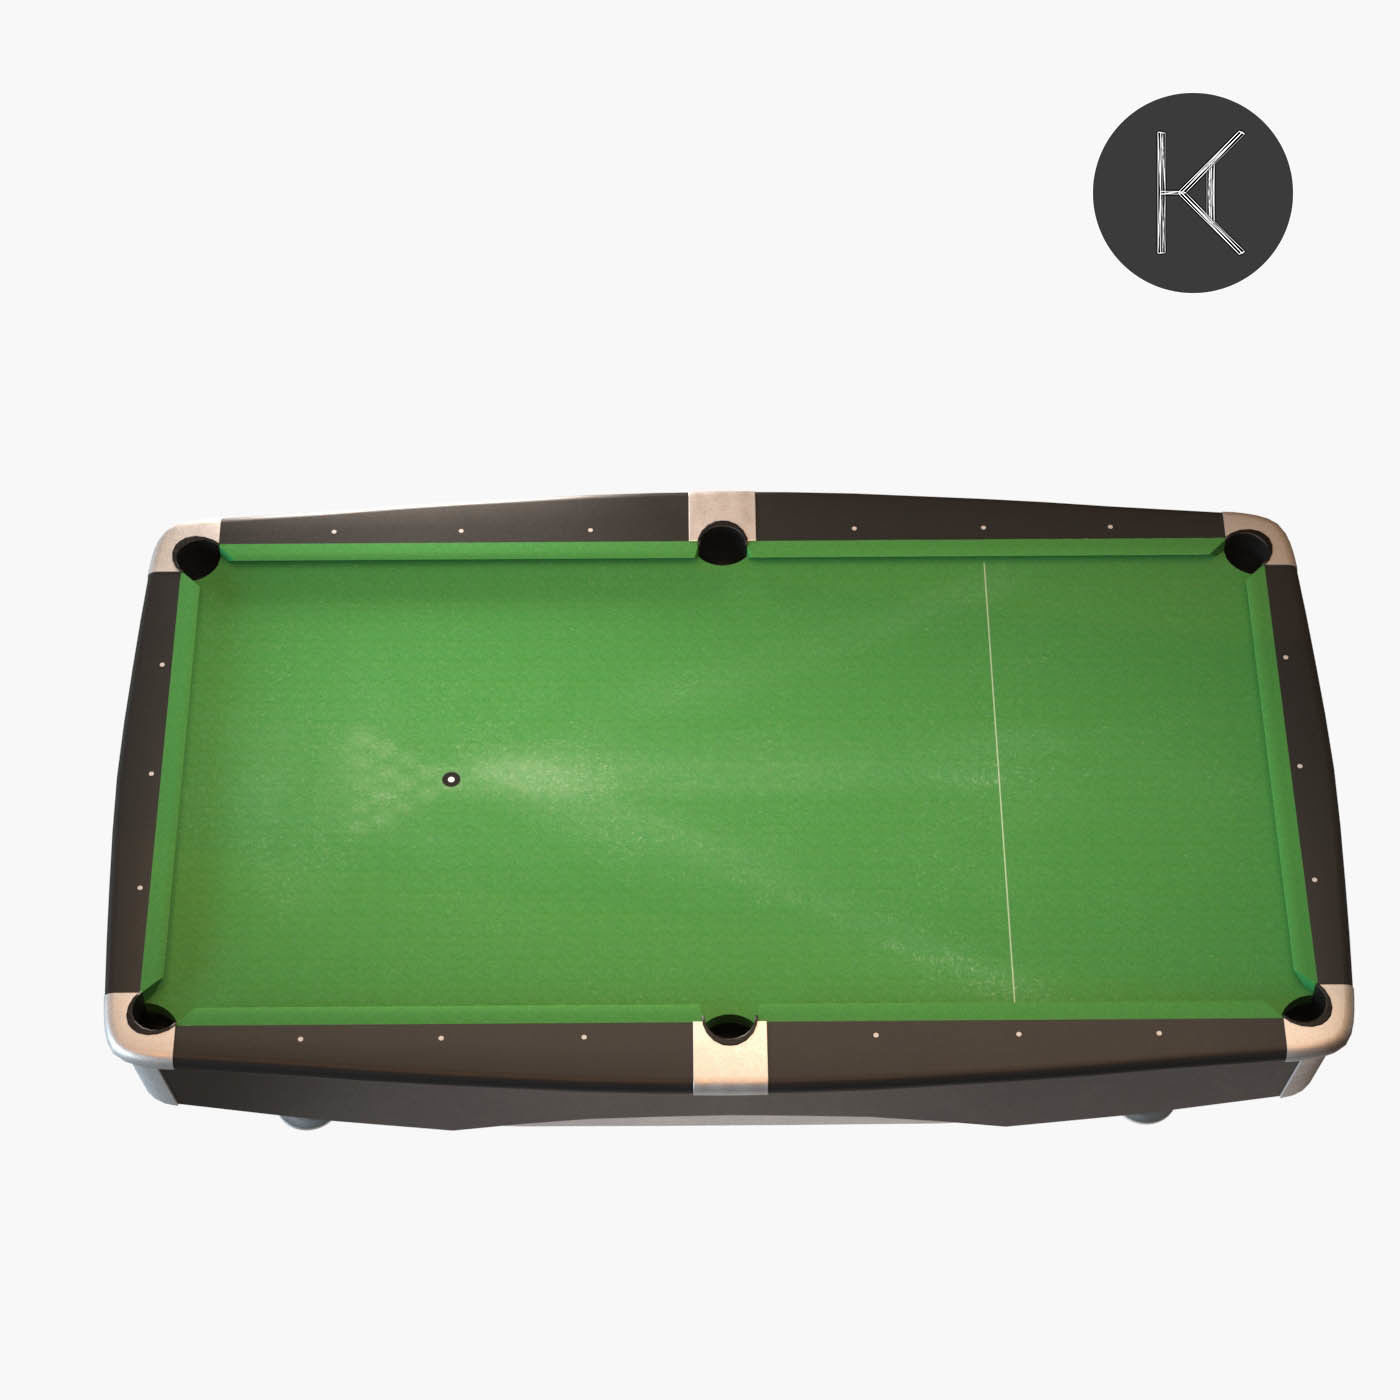 snooker prod solex billiard addison qlt p w table top hei tennis wid with